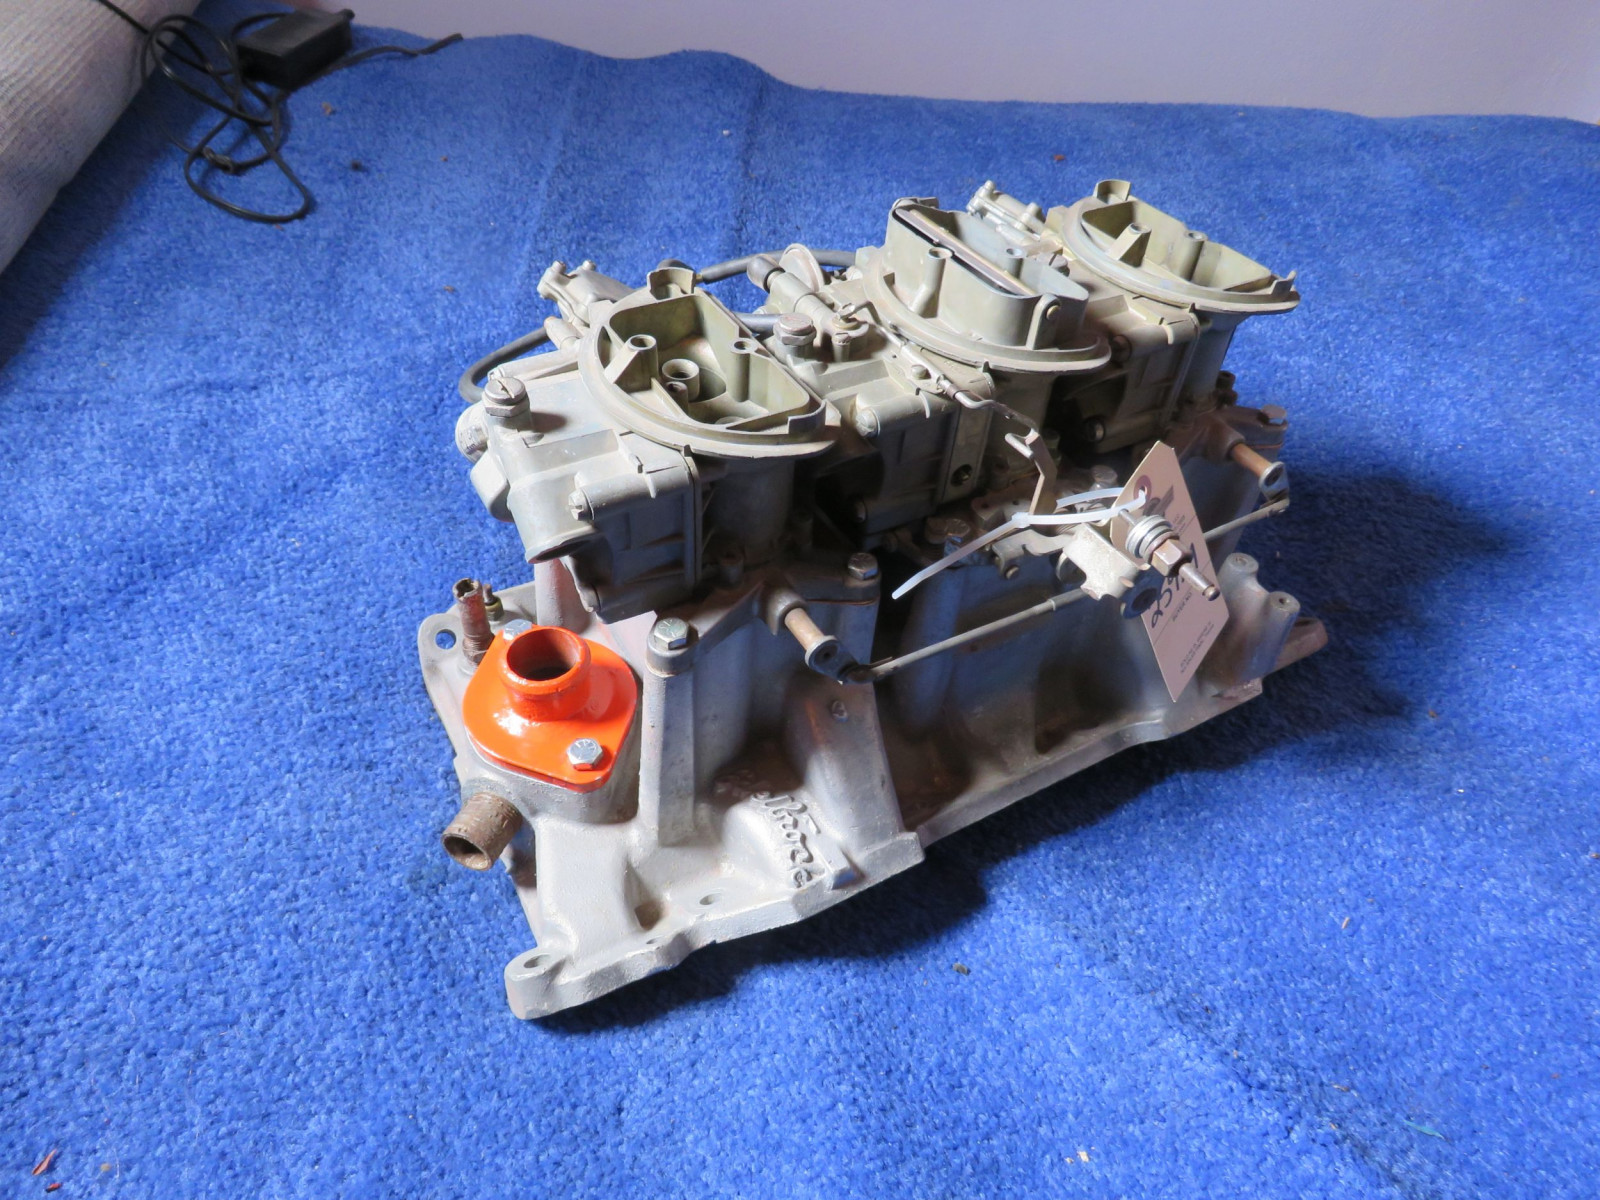 1970 Chrysler 340 Manual Trans 6 Pack Carb Set UP with Edelbrock Al2 Intake Set Up - Image 1